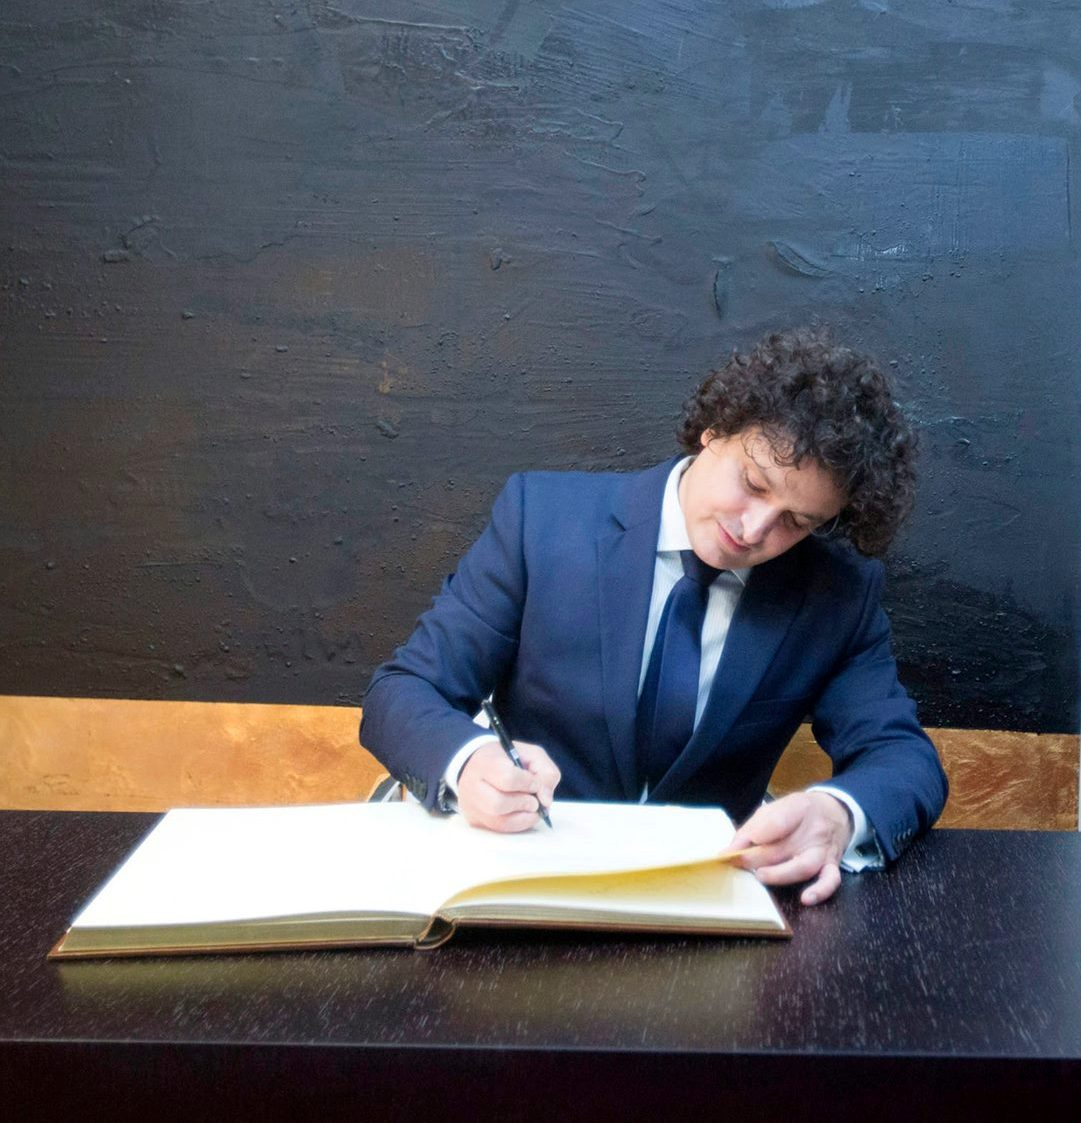 Signing in the Book of Honour of the Palau de la #Música ln #Valencia, that honour is mine. Foto @evaripoll #Mahler